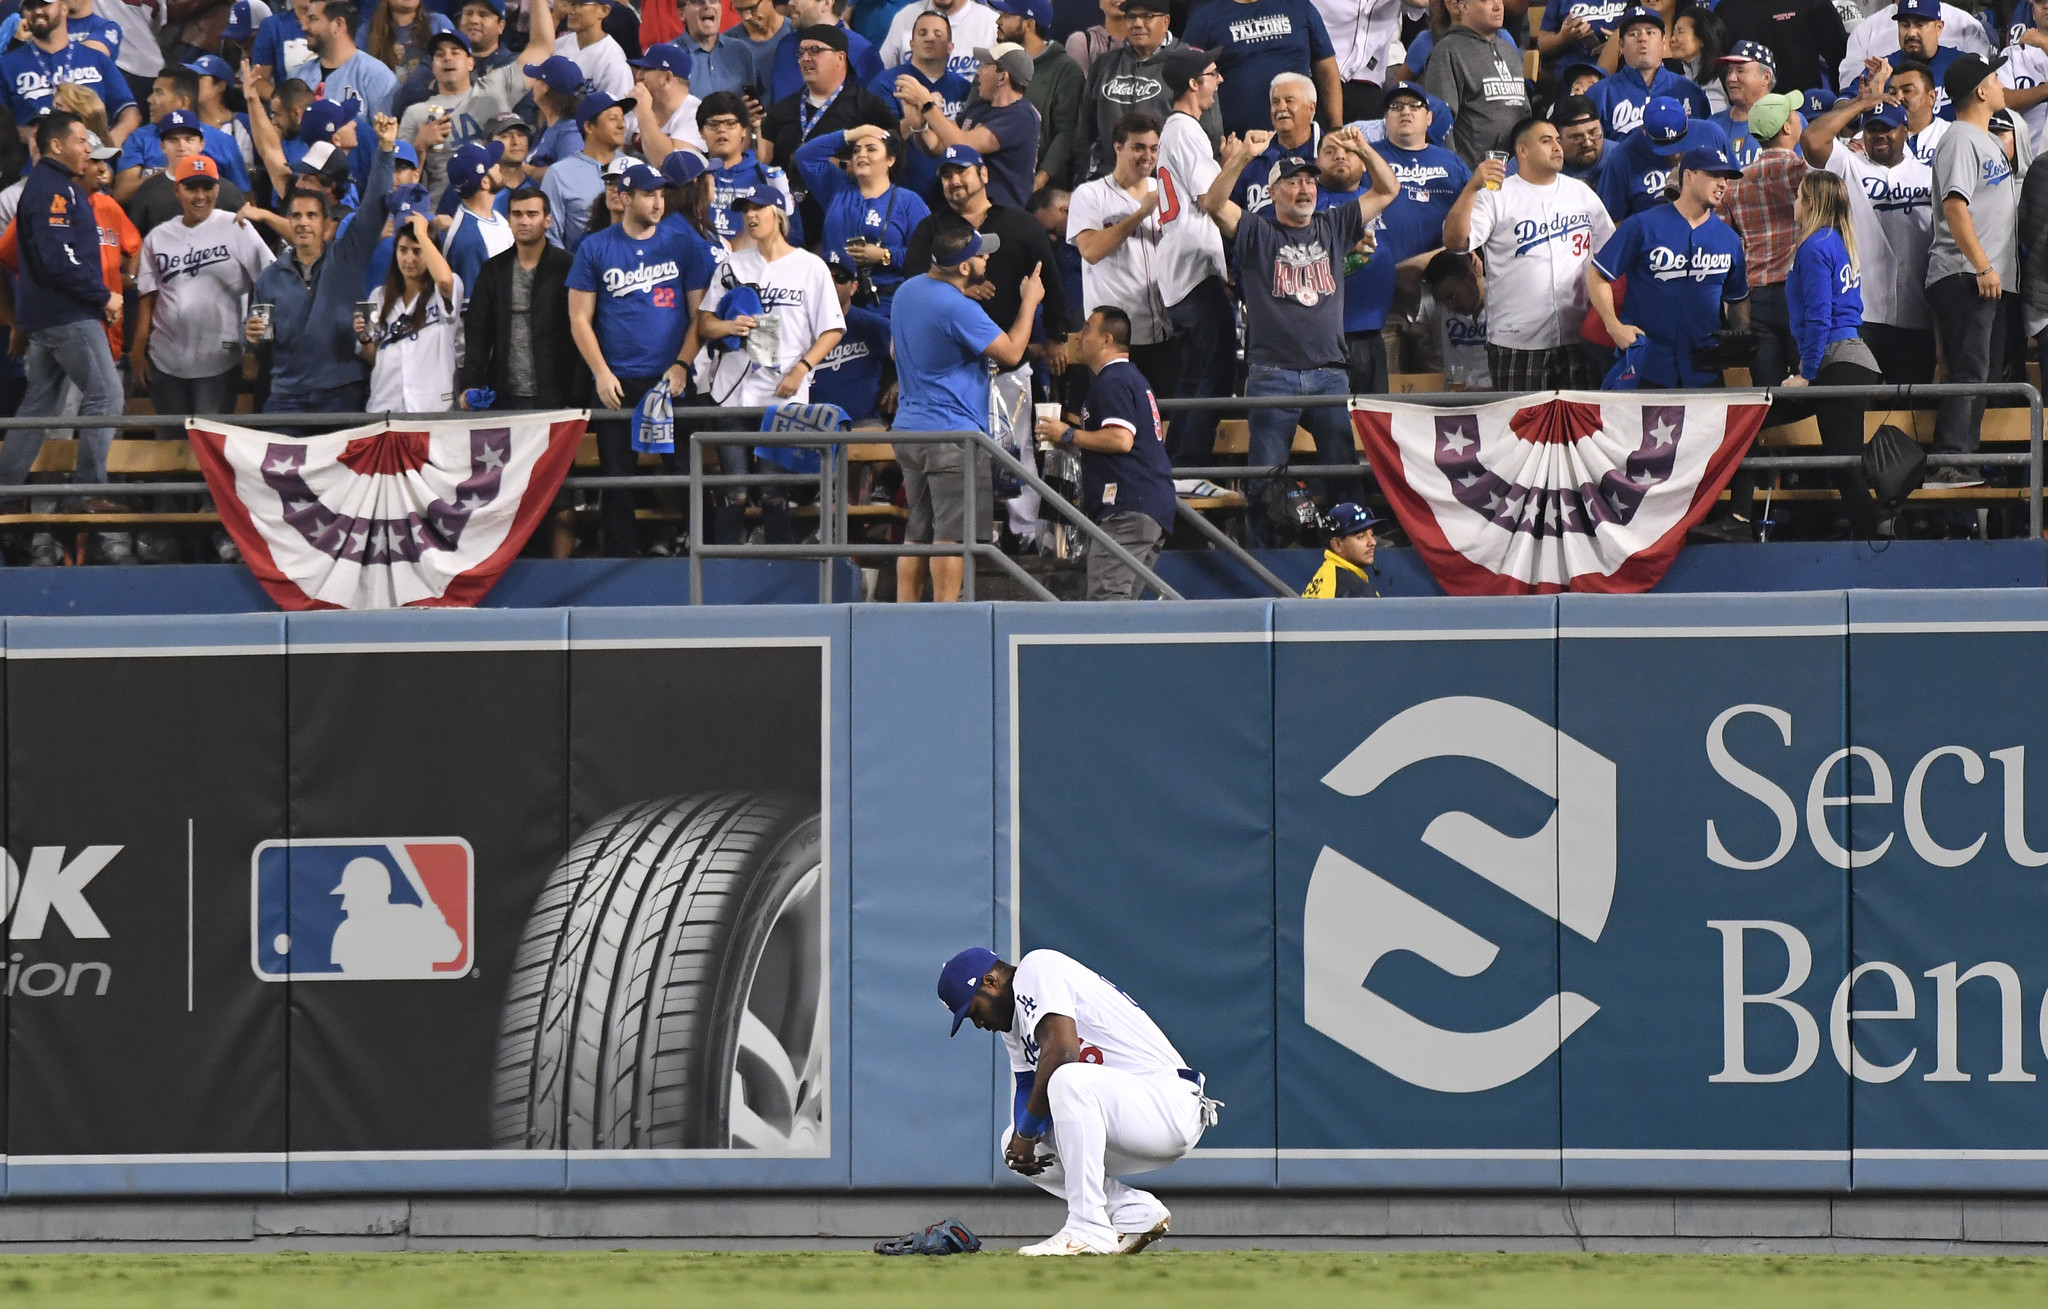 LOS ANGELES, CALIFORNIA , OCTOBER 27, 2018-Dodgers Yasiel Puig reacts after Red Sox hitter Mitch Mor